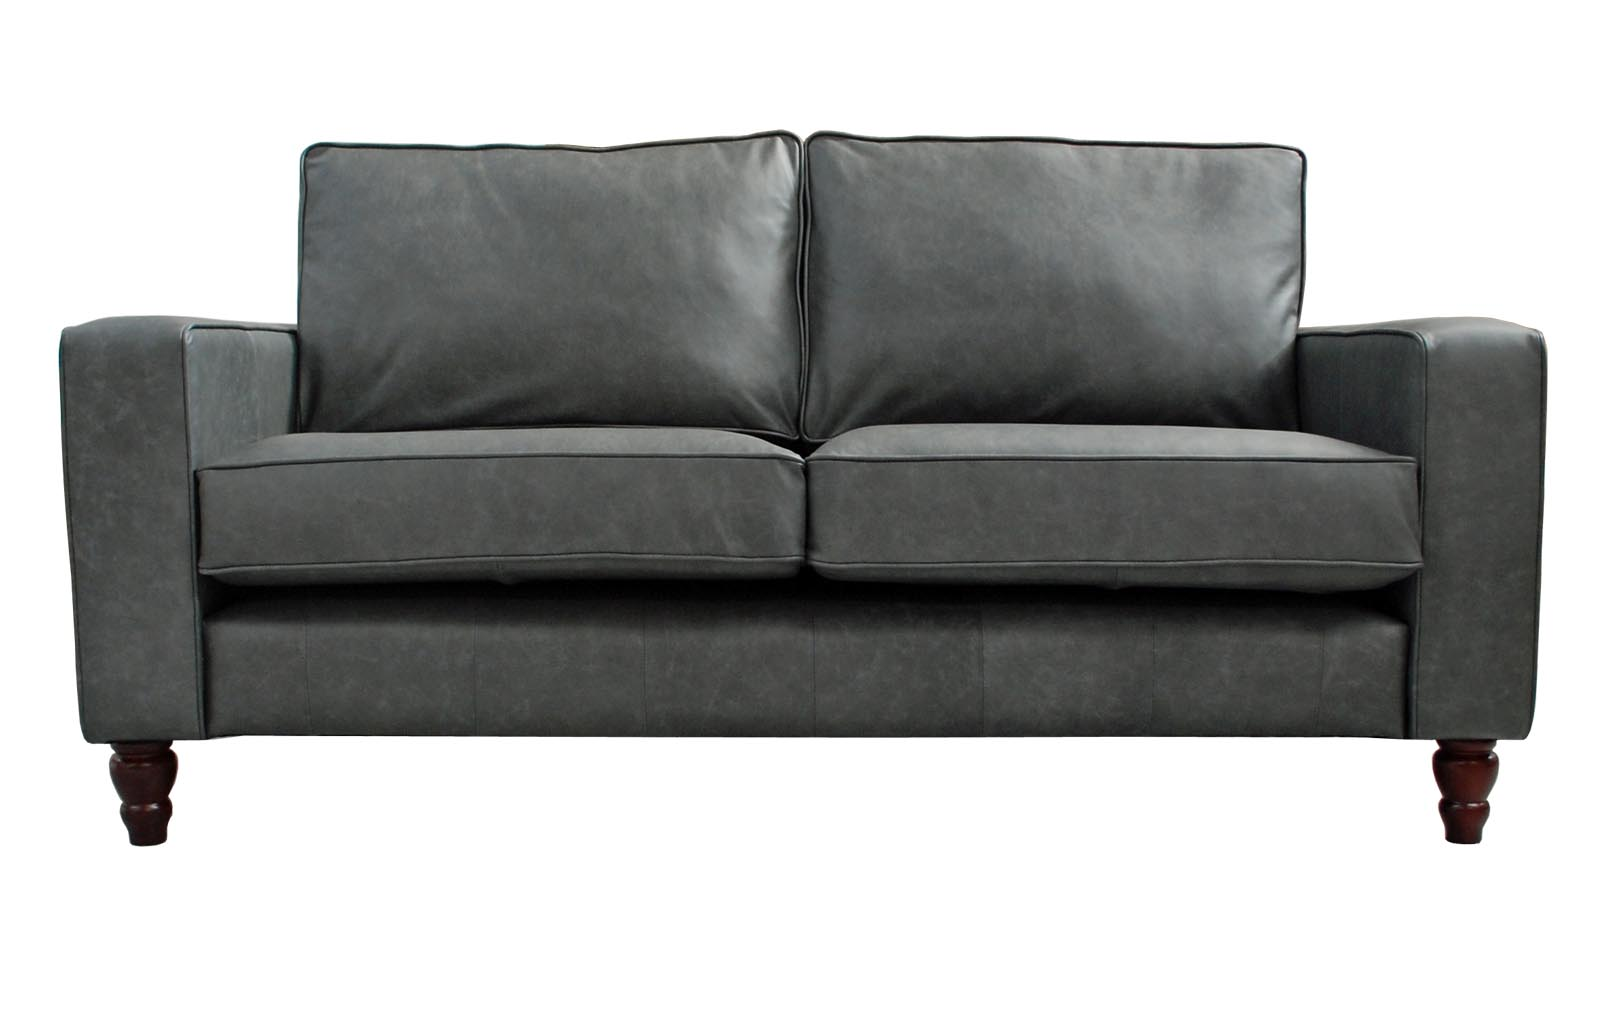 the leather sofa company uk design images latest derry contemporary sofas handmade in manchester